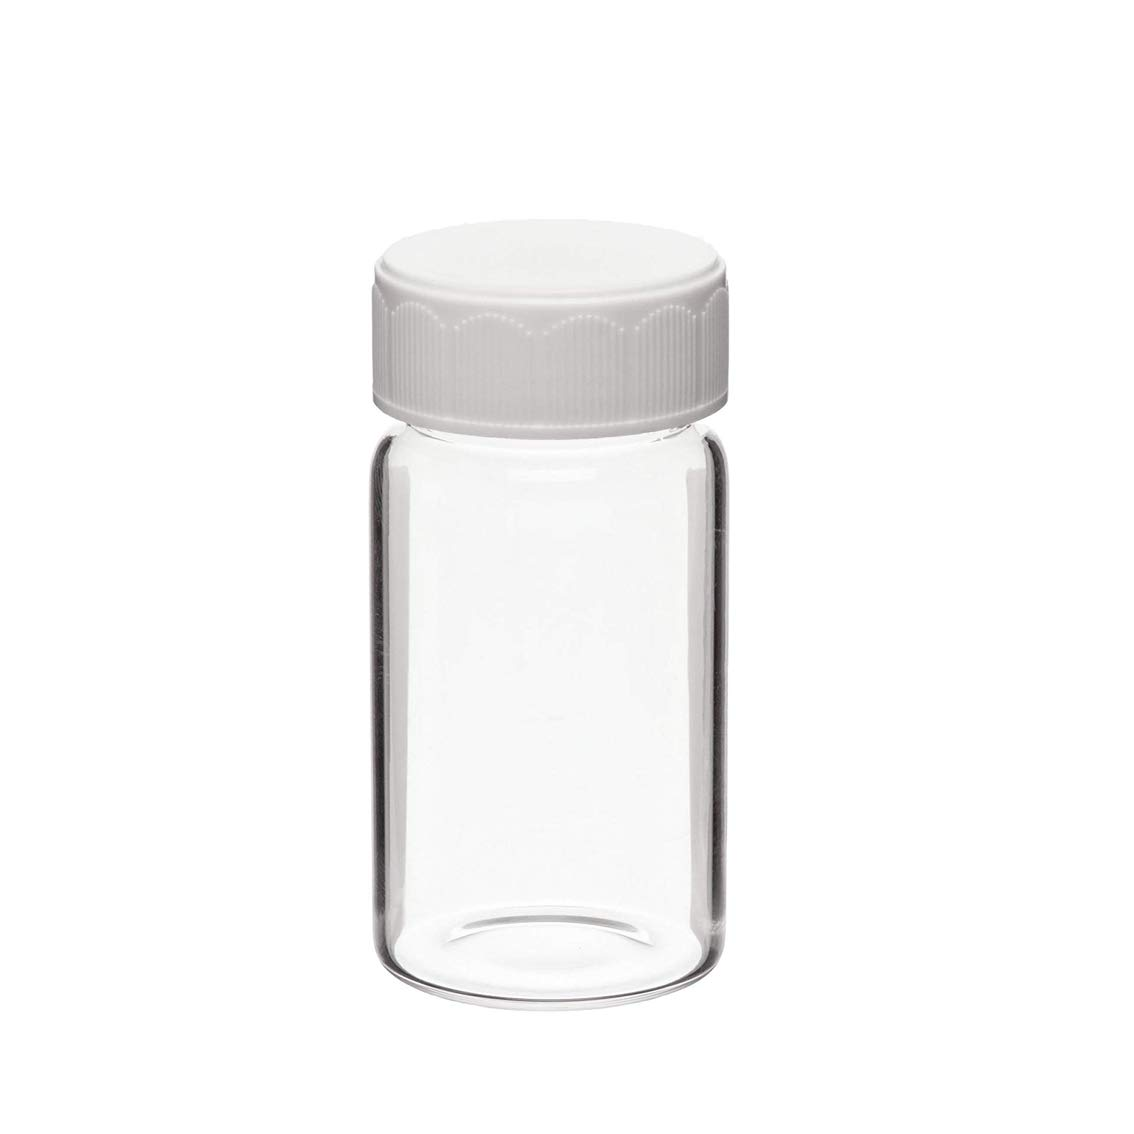 366228203 Borosilicate Glass 7mL Scintillation Vial with Urea Cap Cork-Backed Foil Liner 24-400 GPI Thread Finish (Case of 500)